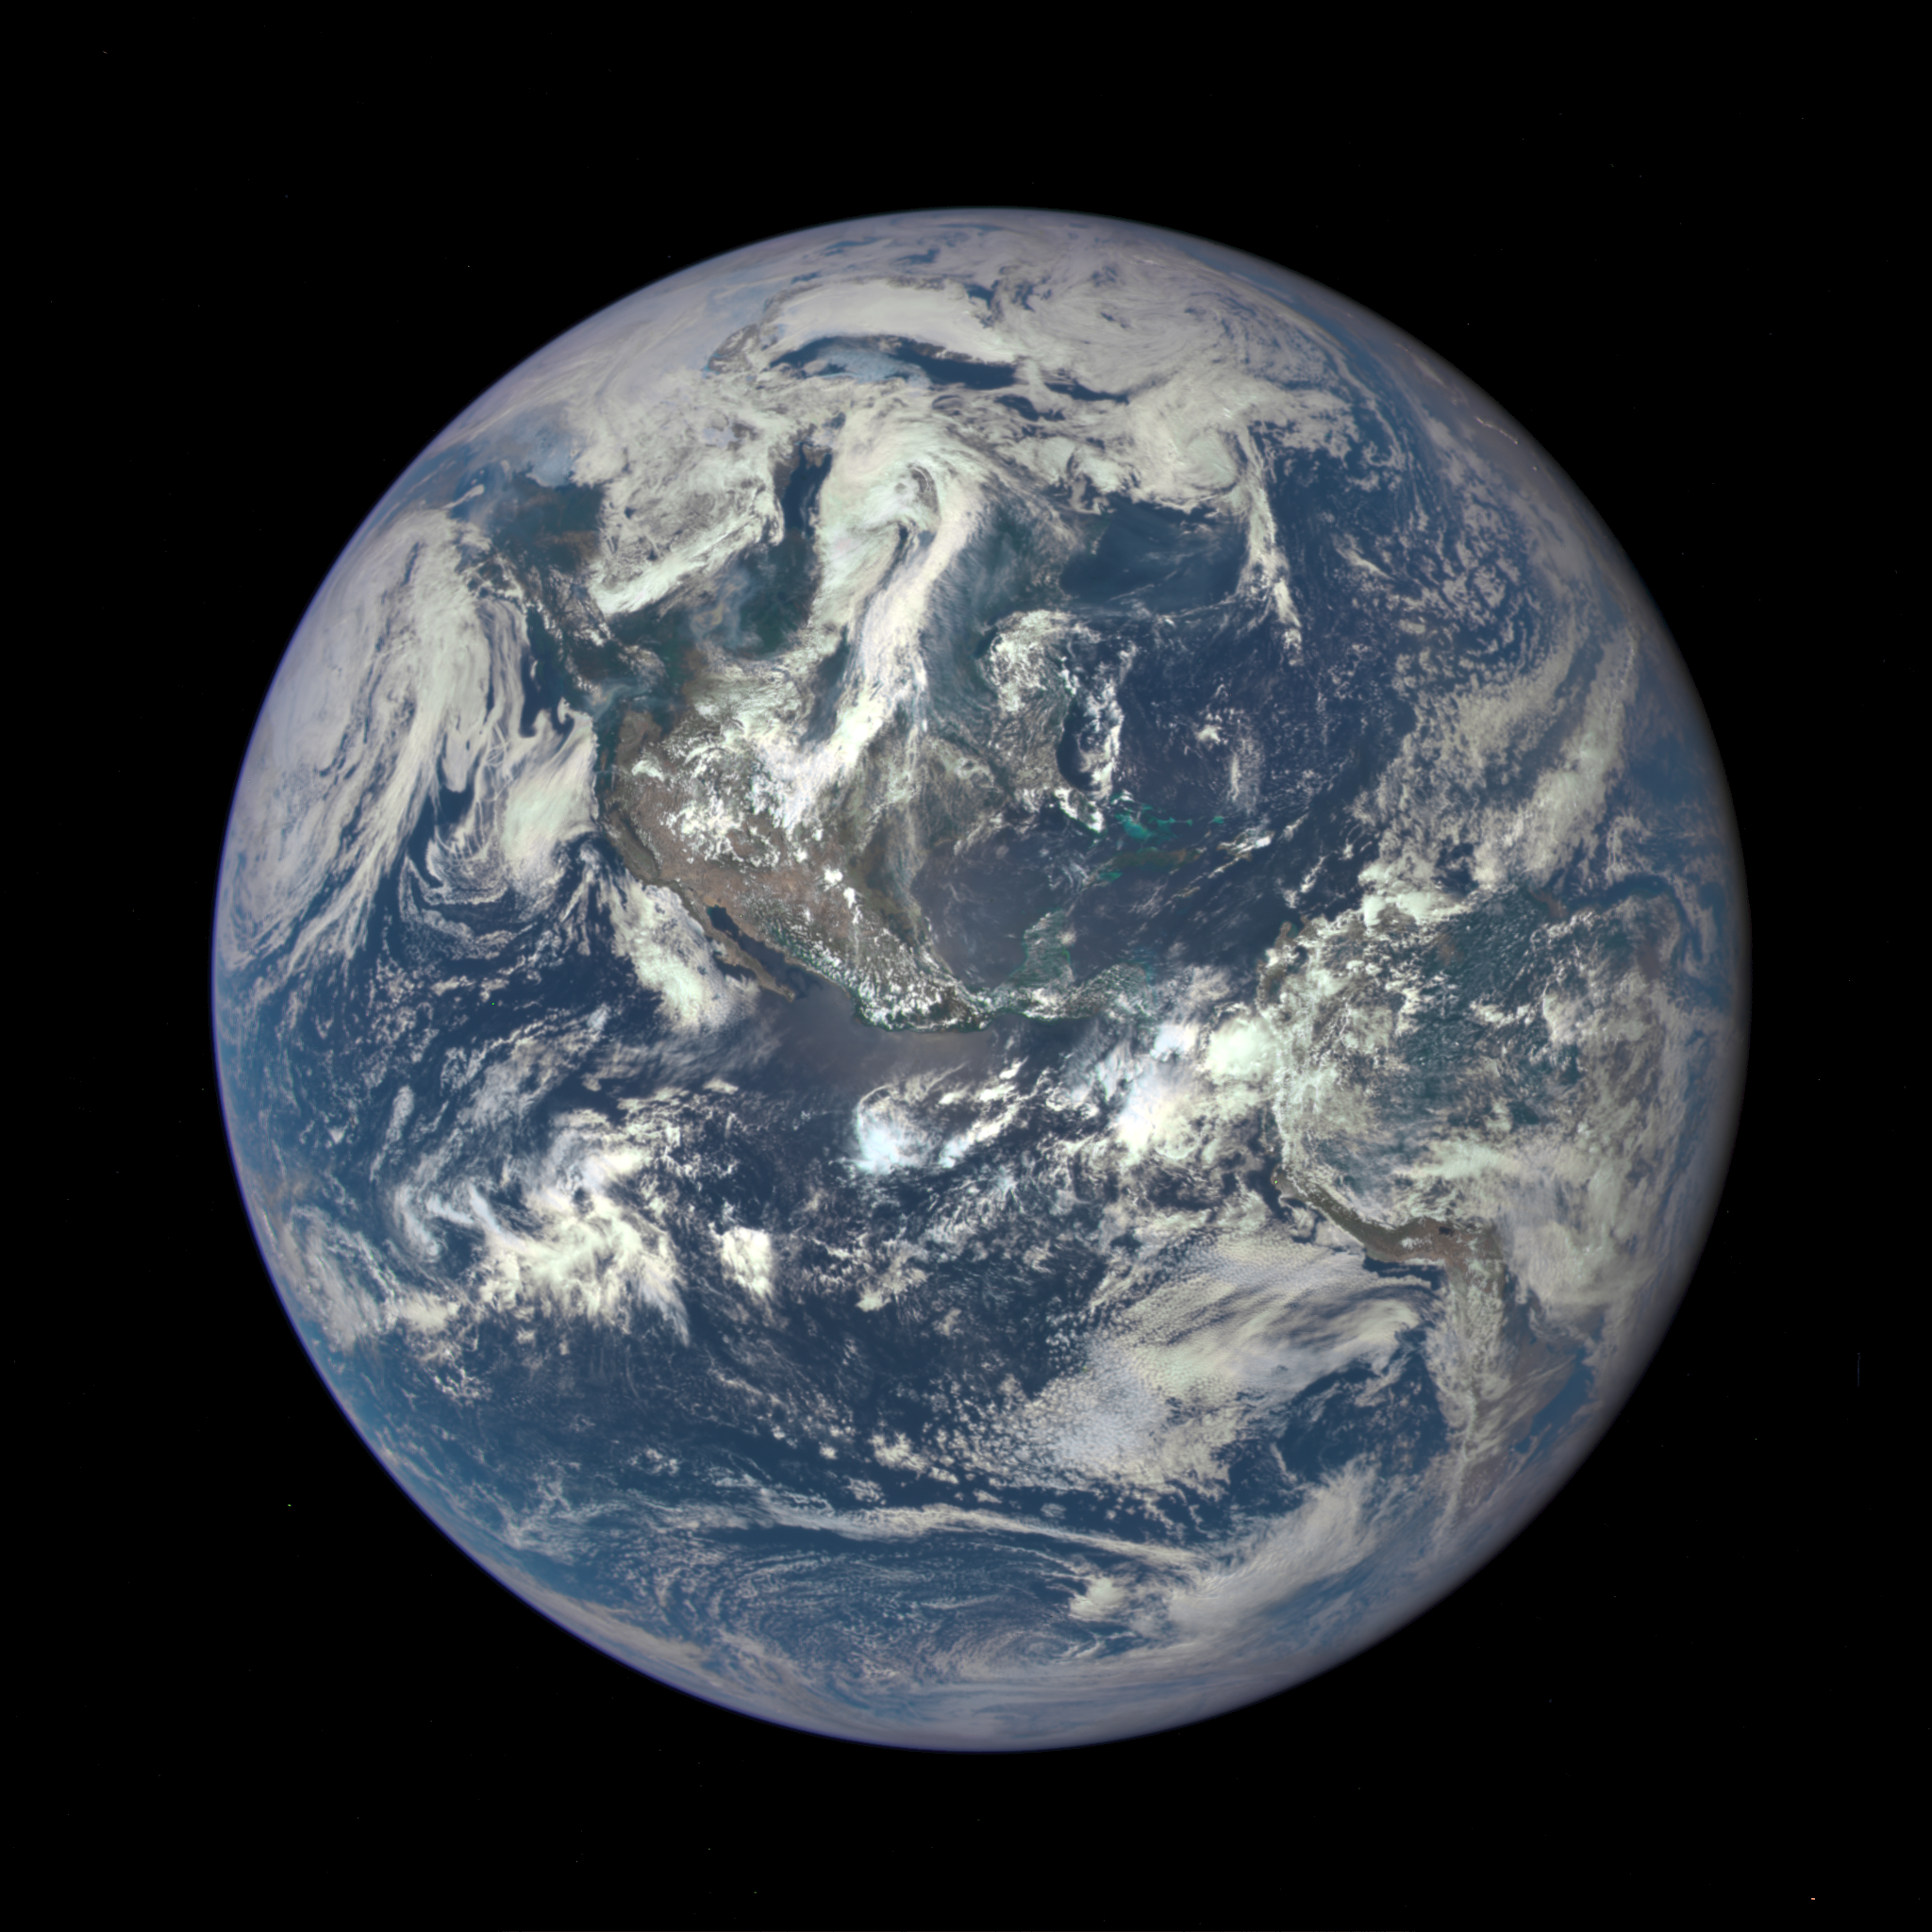 NASA Satellite Camera Provides EPIC View Of Earth NASA - Live earth view through satellite